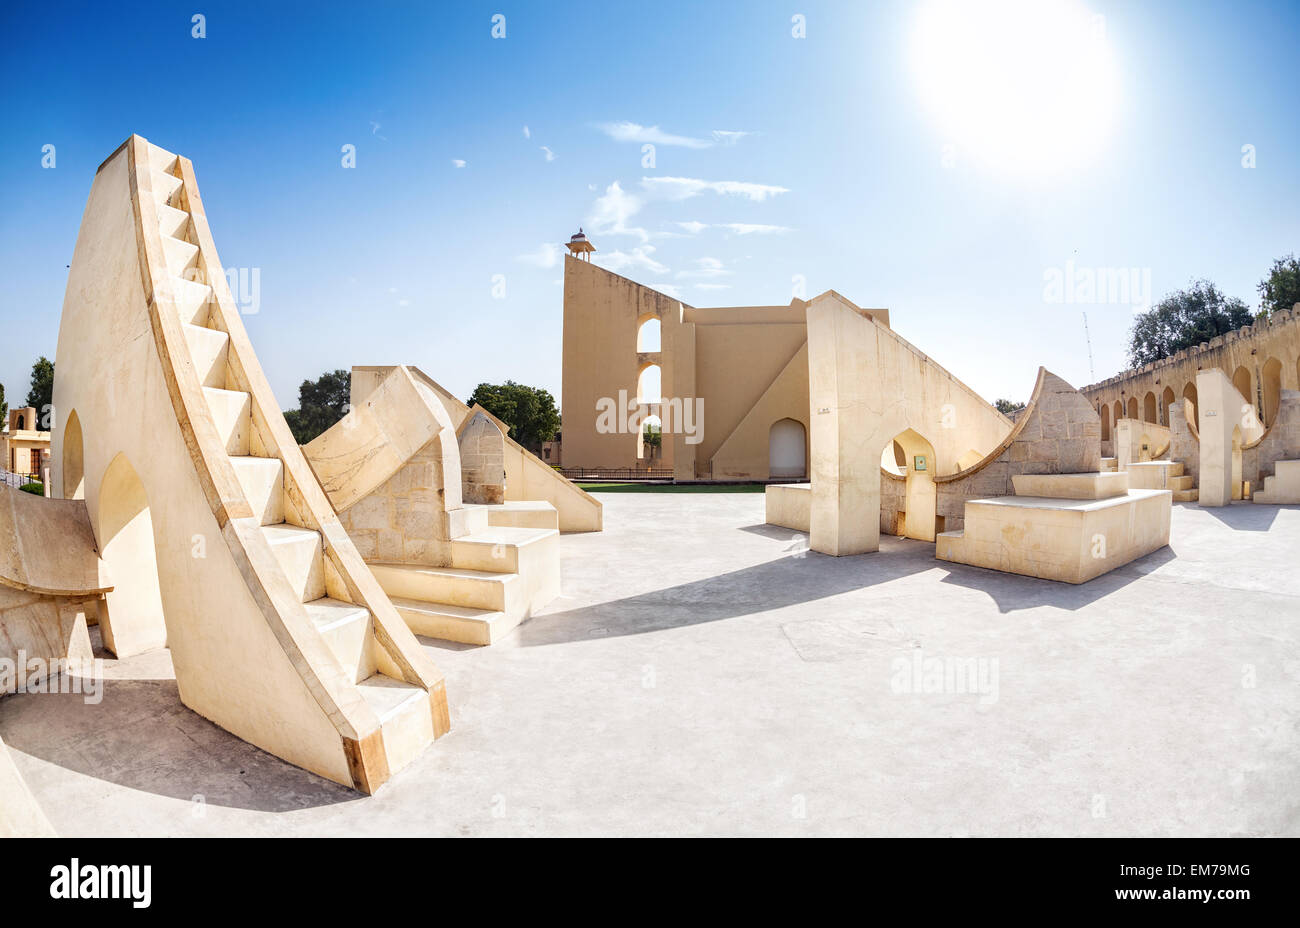 Jantar Mantar observatory complex at blue sky in Jaipur, Rajasthan, India - Stock Image